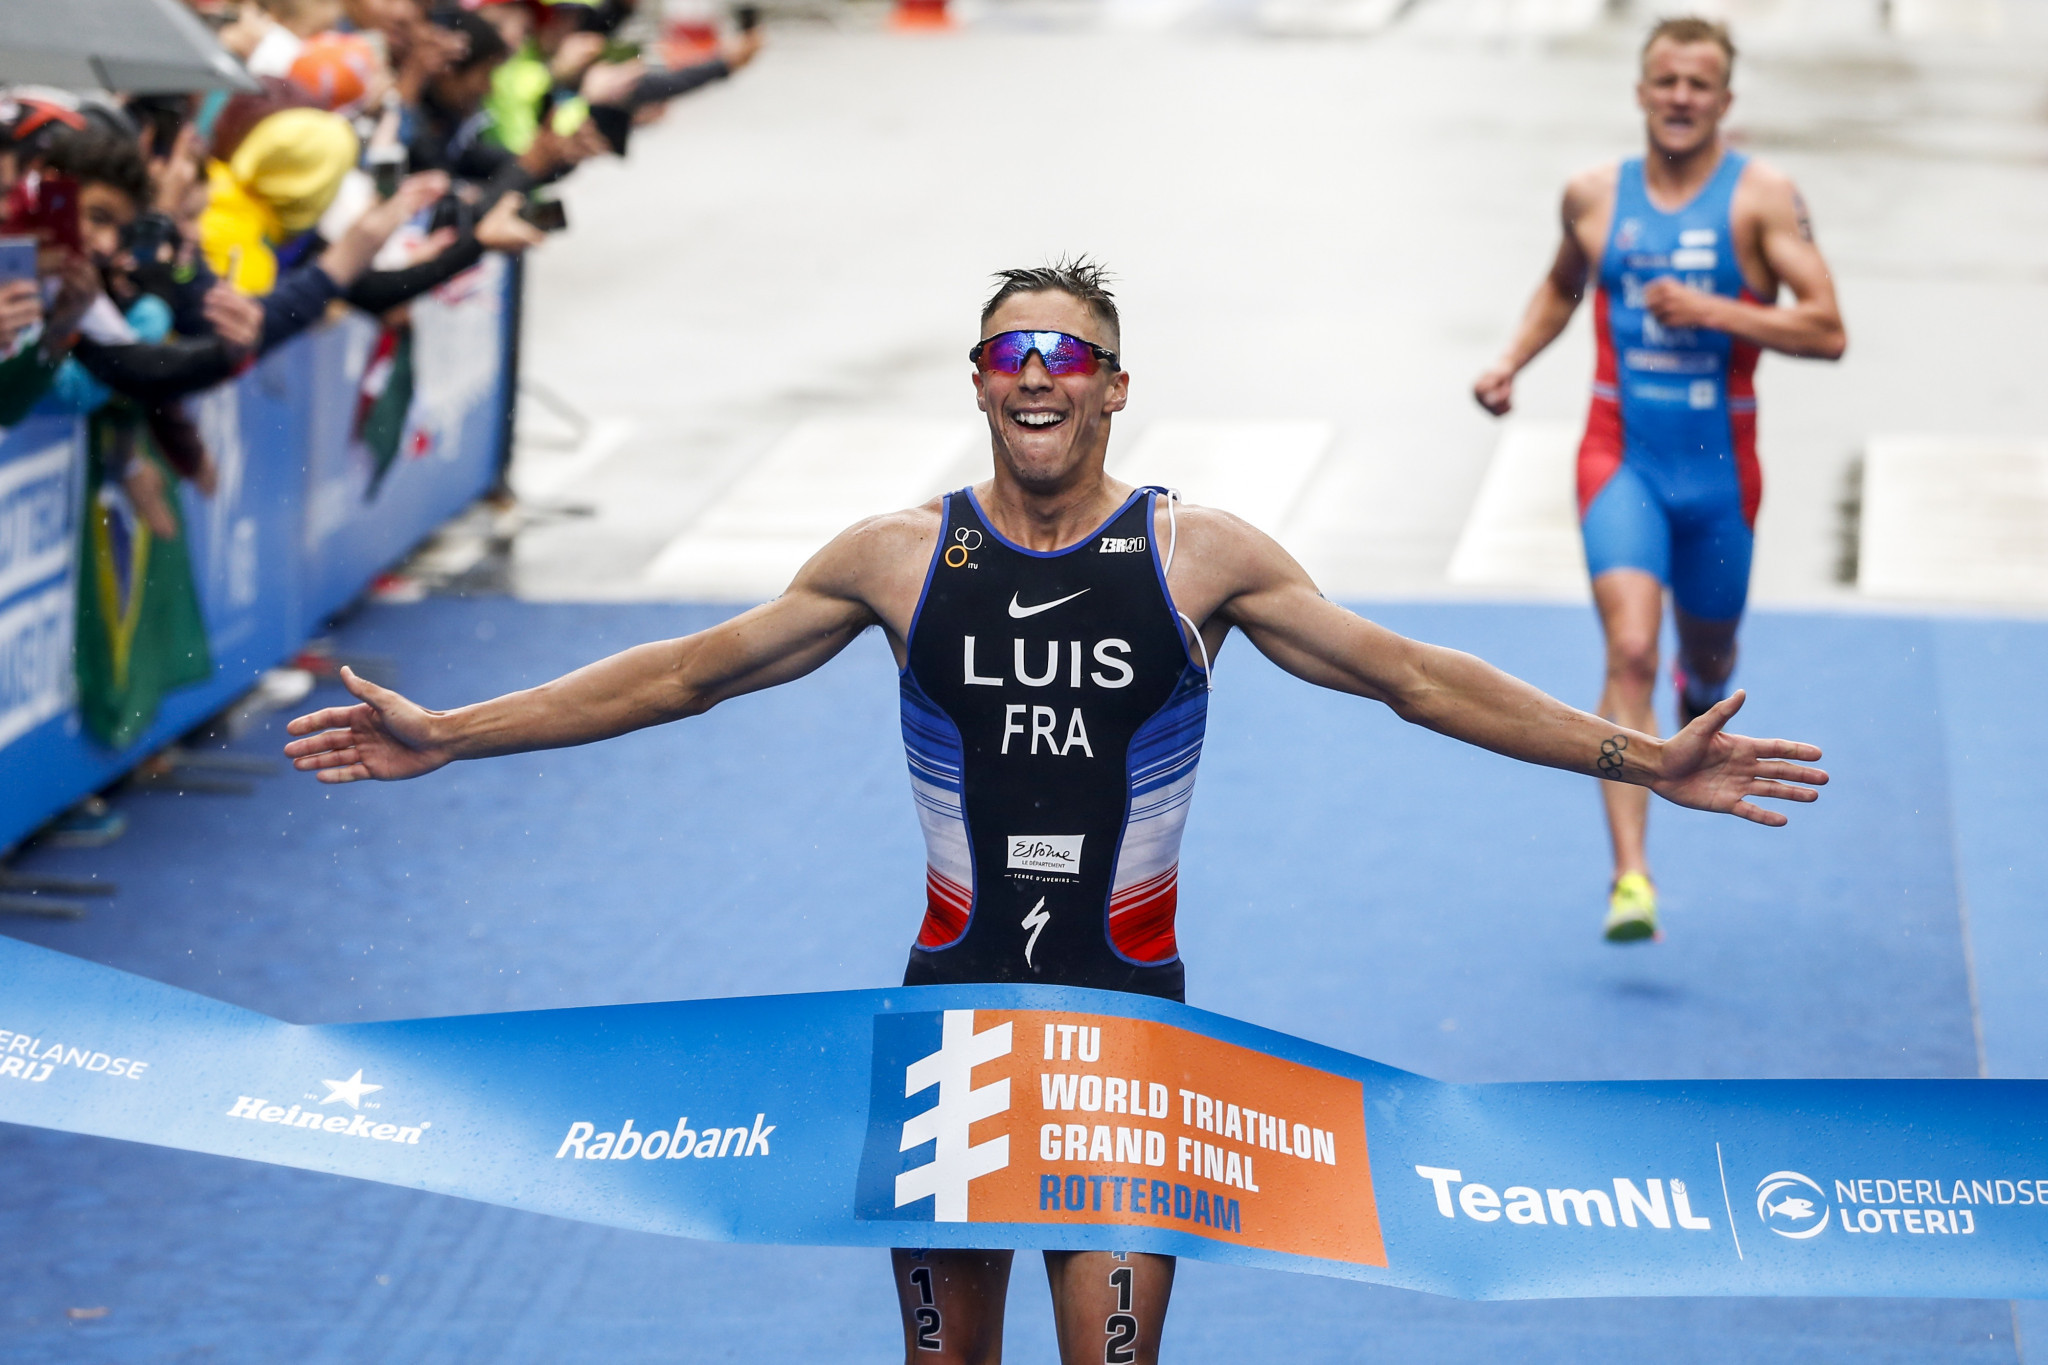 The ITU are inviting bids for the World Triathlon Grand Final ©Getty Images